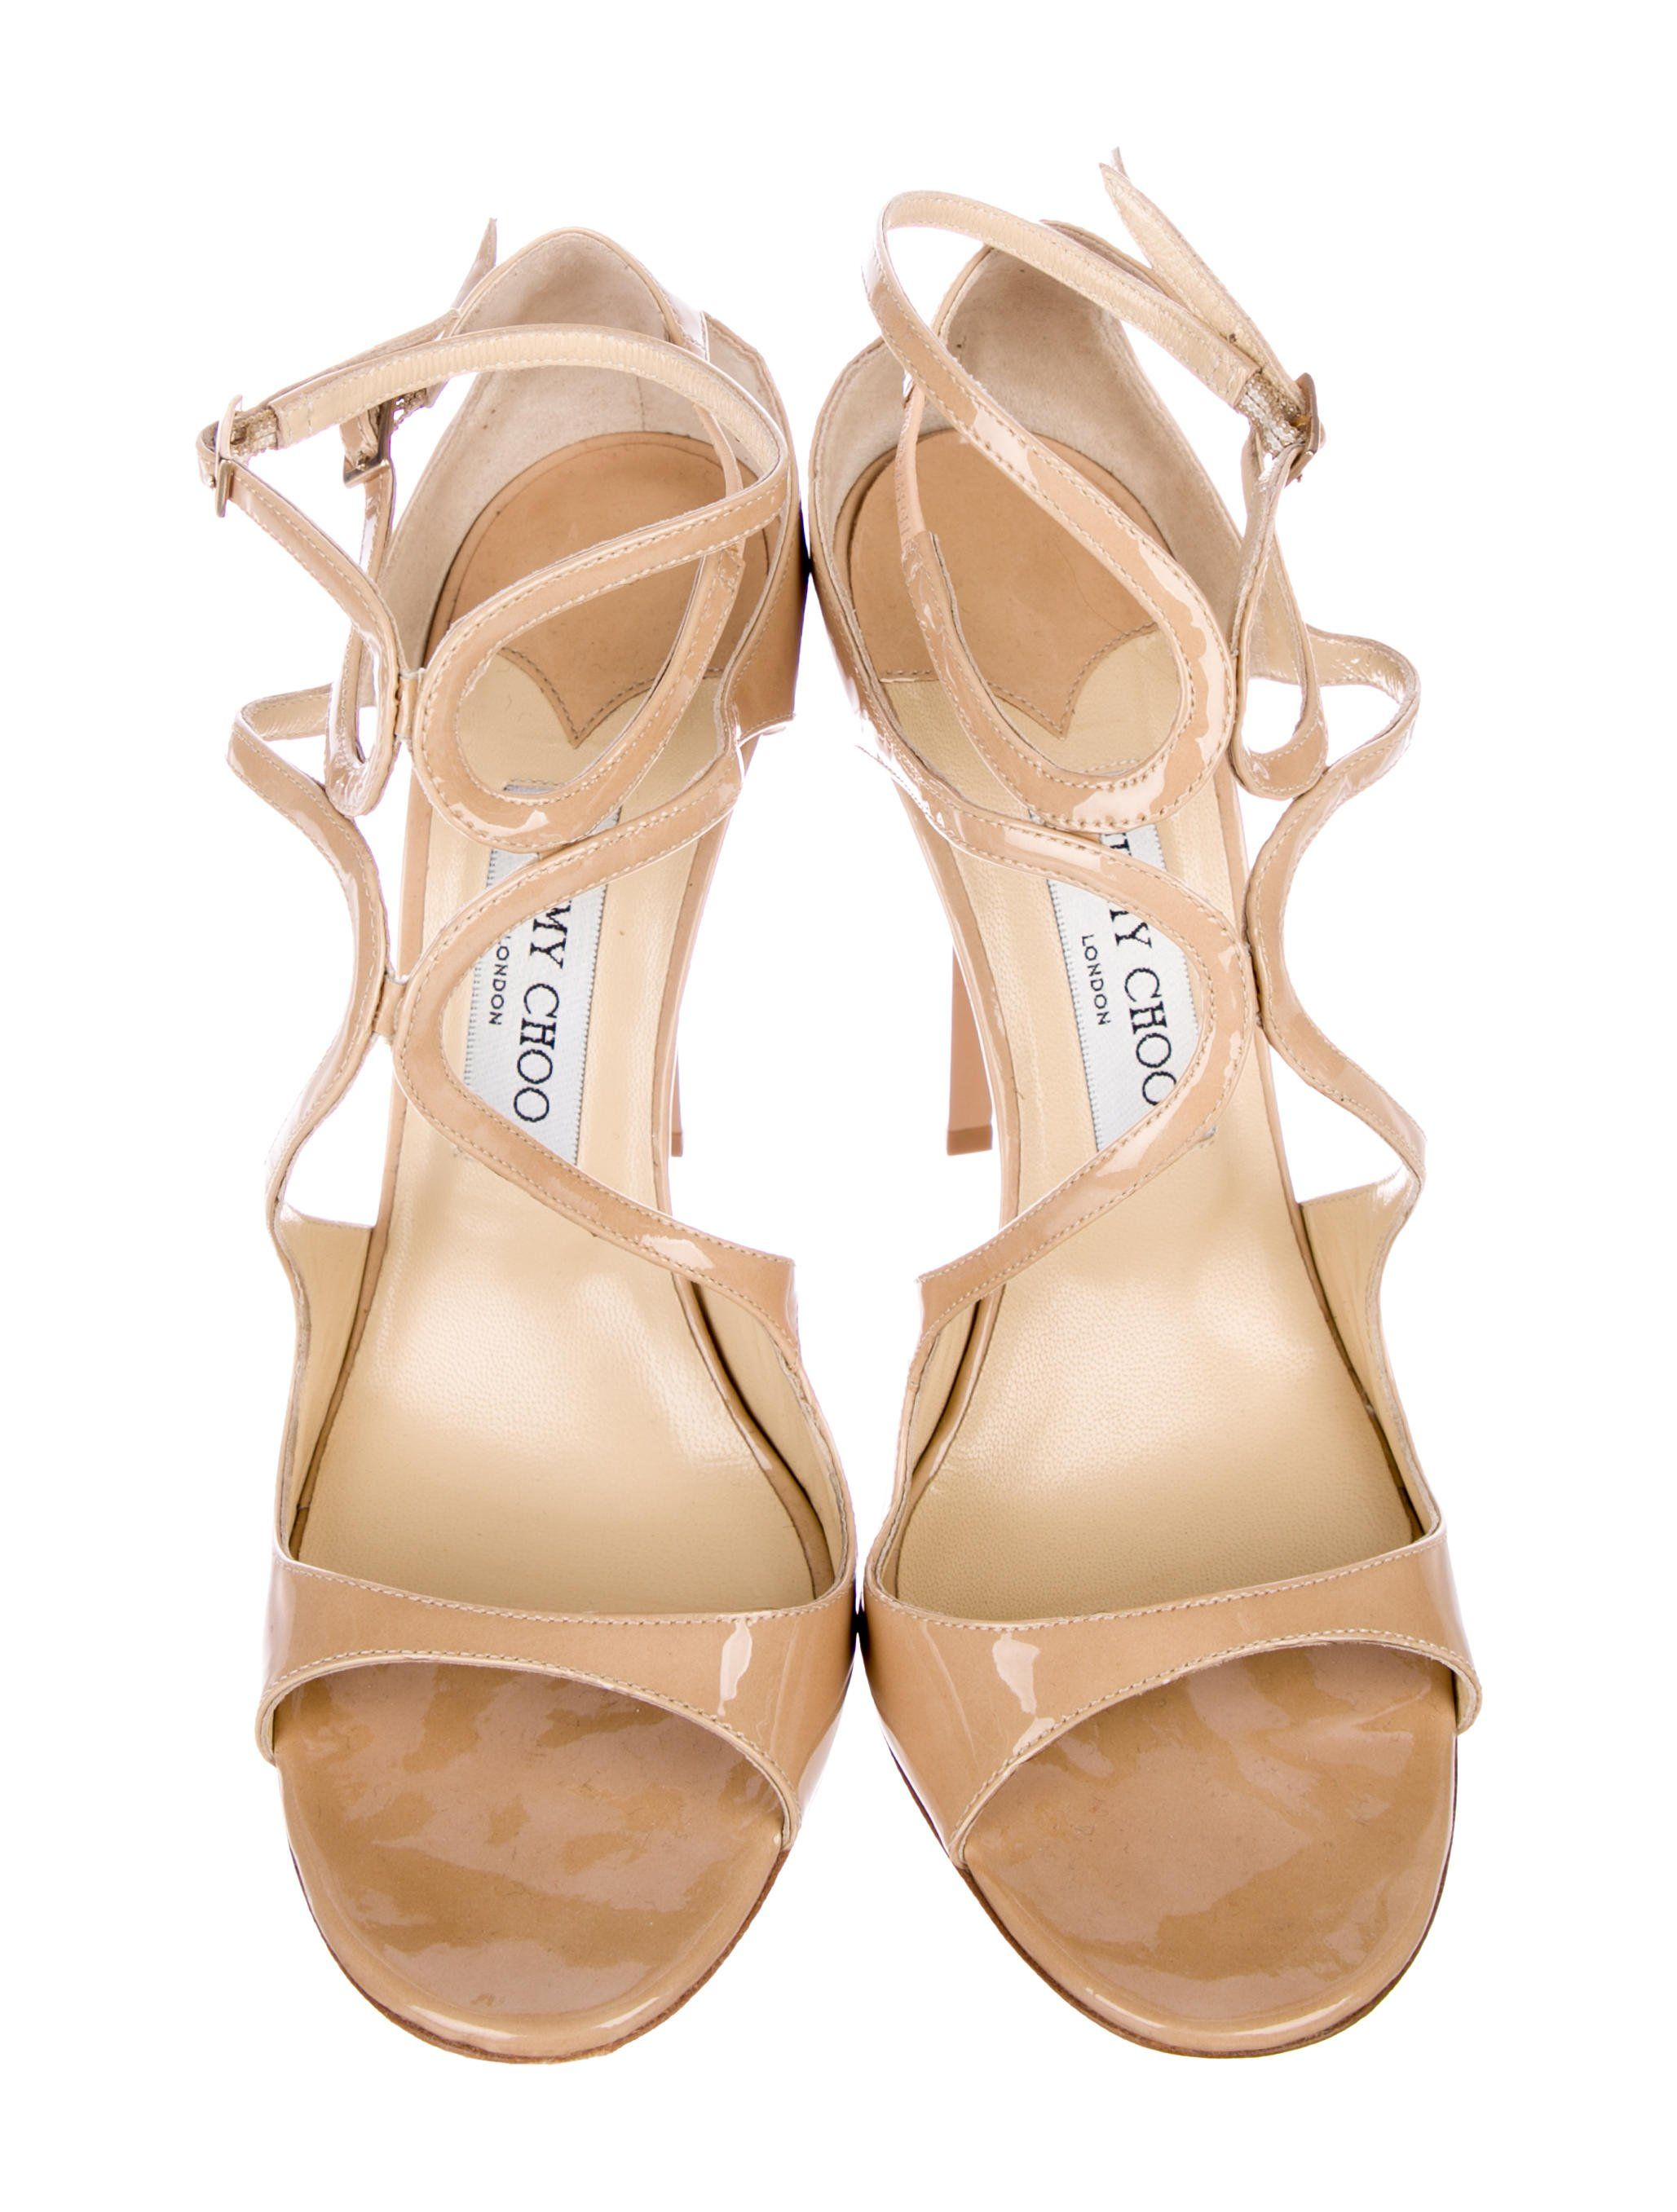 tan patent leather jimmy choo lang sandals iwth resin heels and